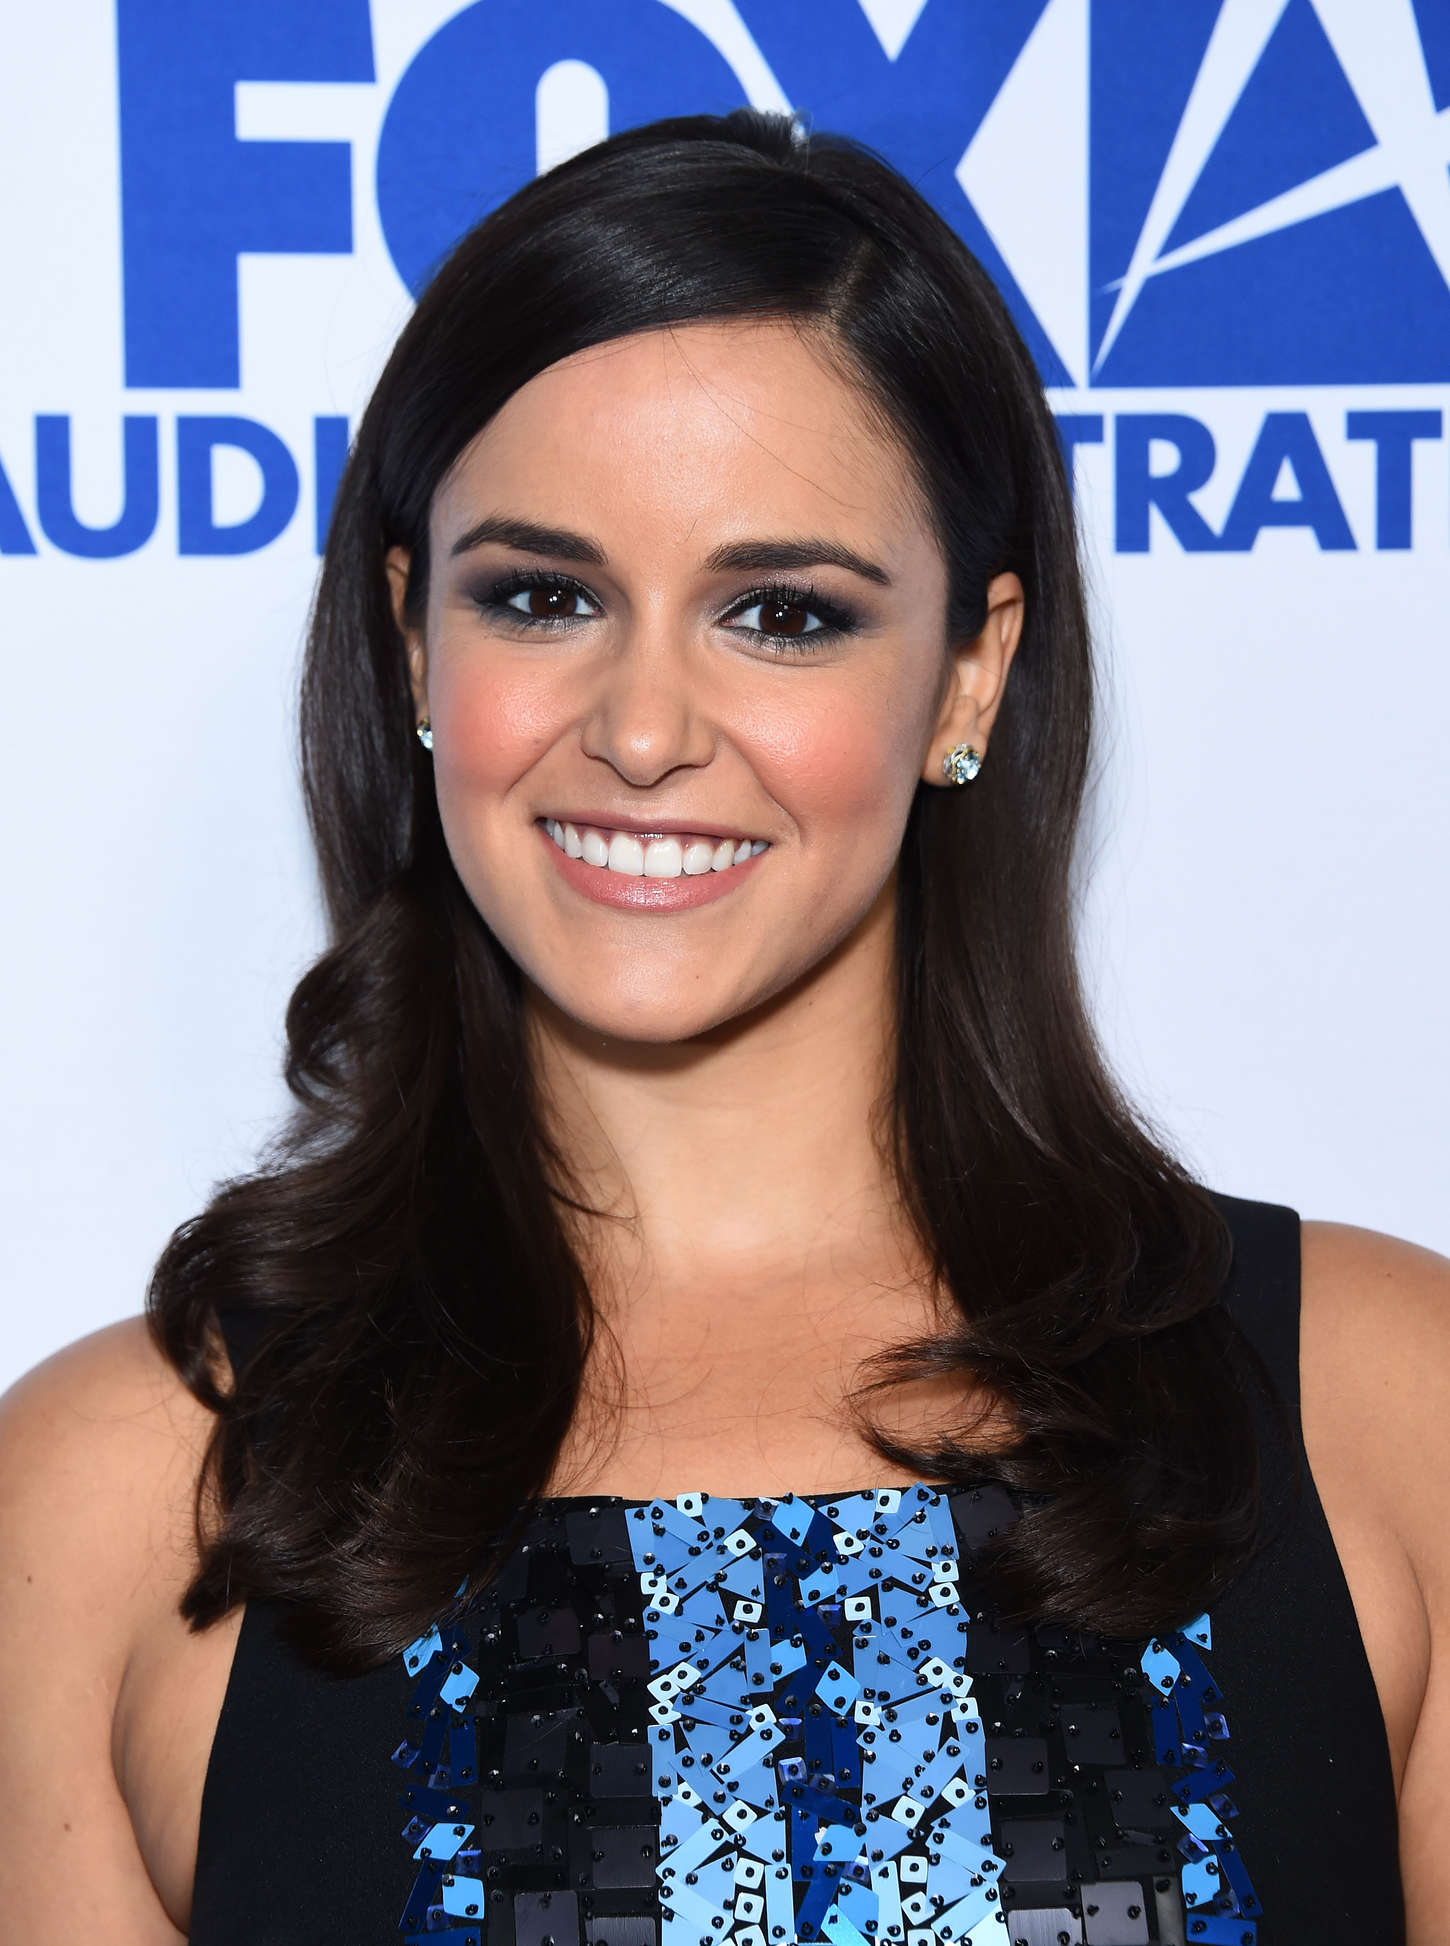 Melissa Fumero leaves the drama behind for some laughs on